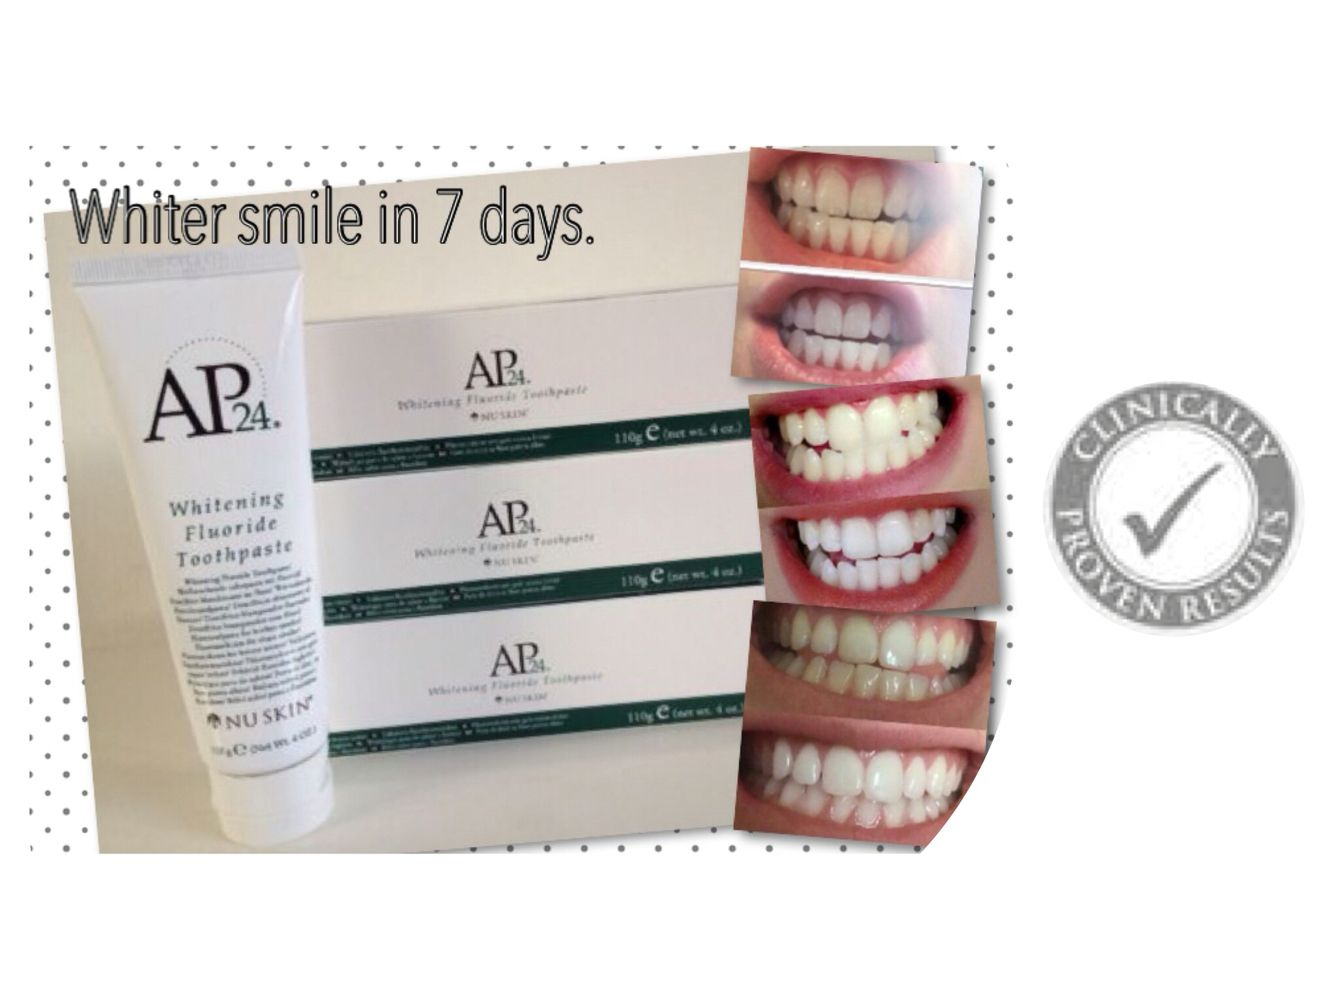 I never thought I'd be so excited about toothpaste but this truly is amazing. Check the link out below. That should give you something to smile about! https://www.facebook.com/groups/1173270062684511/